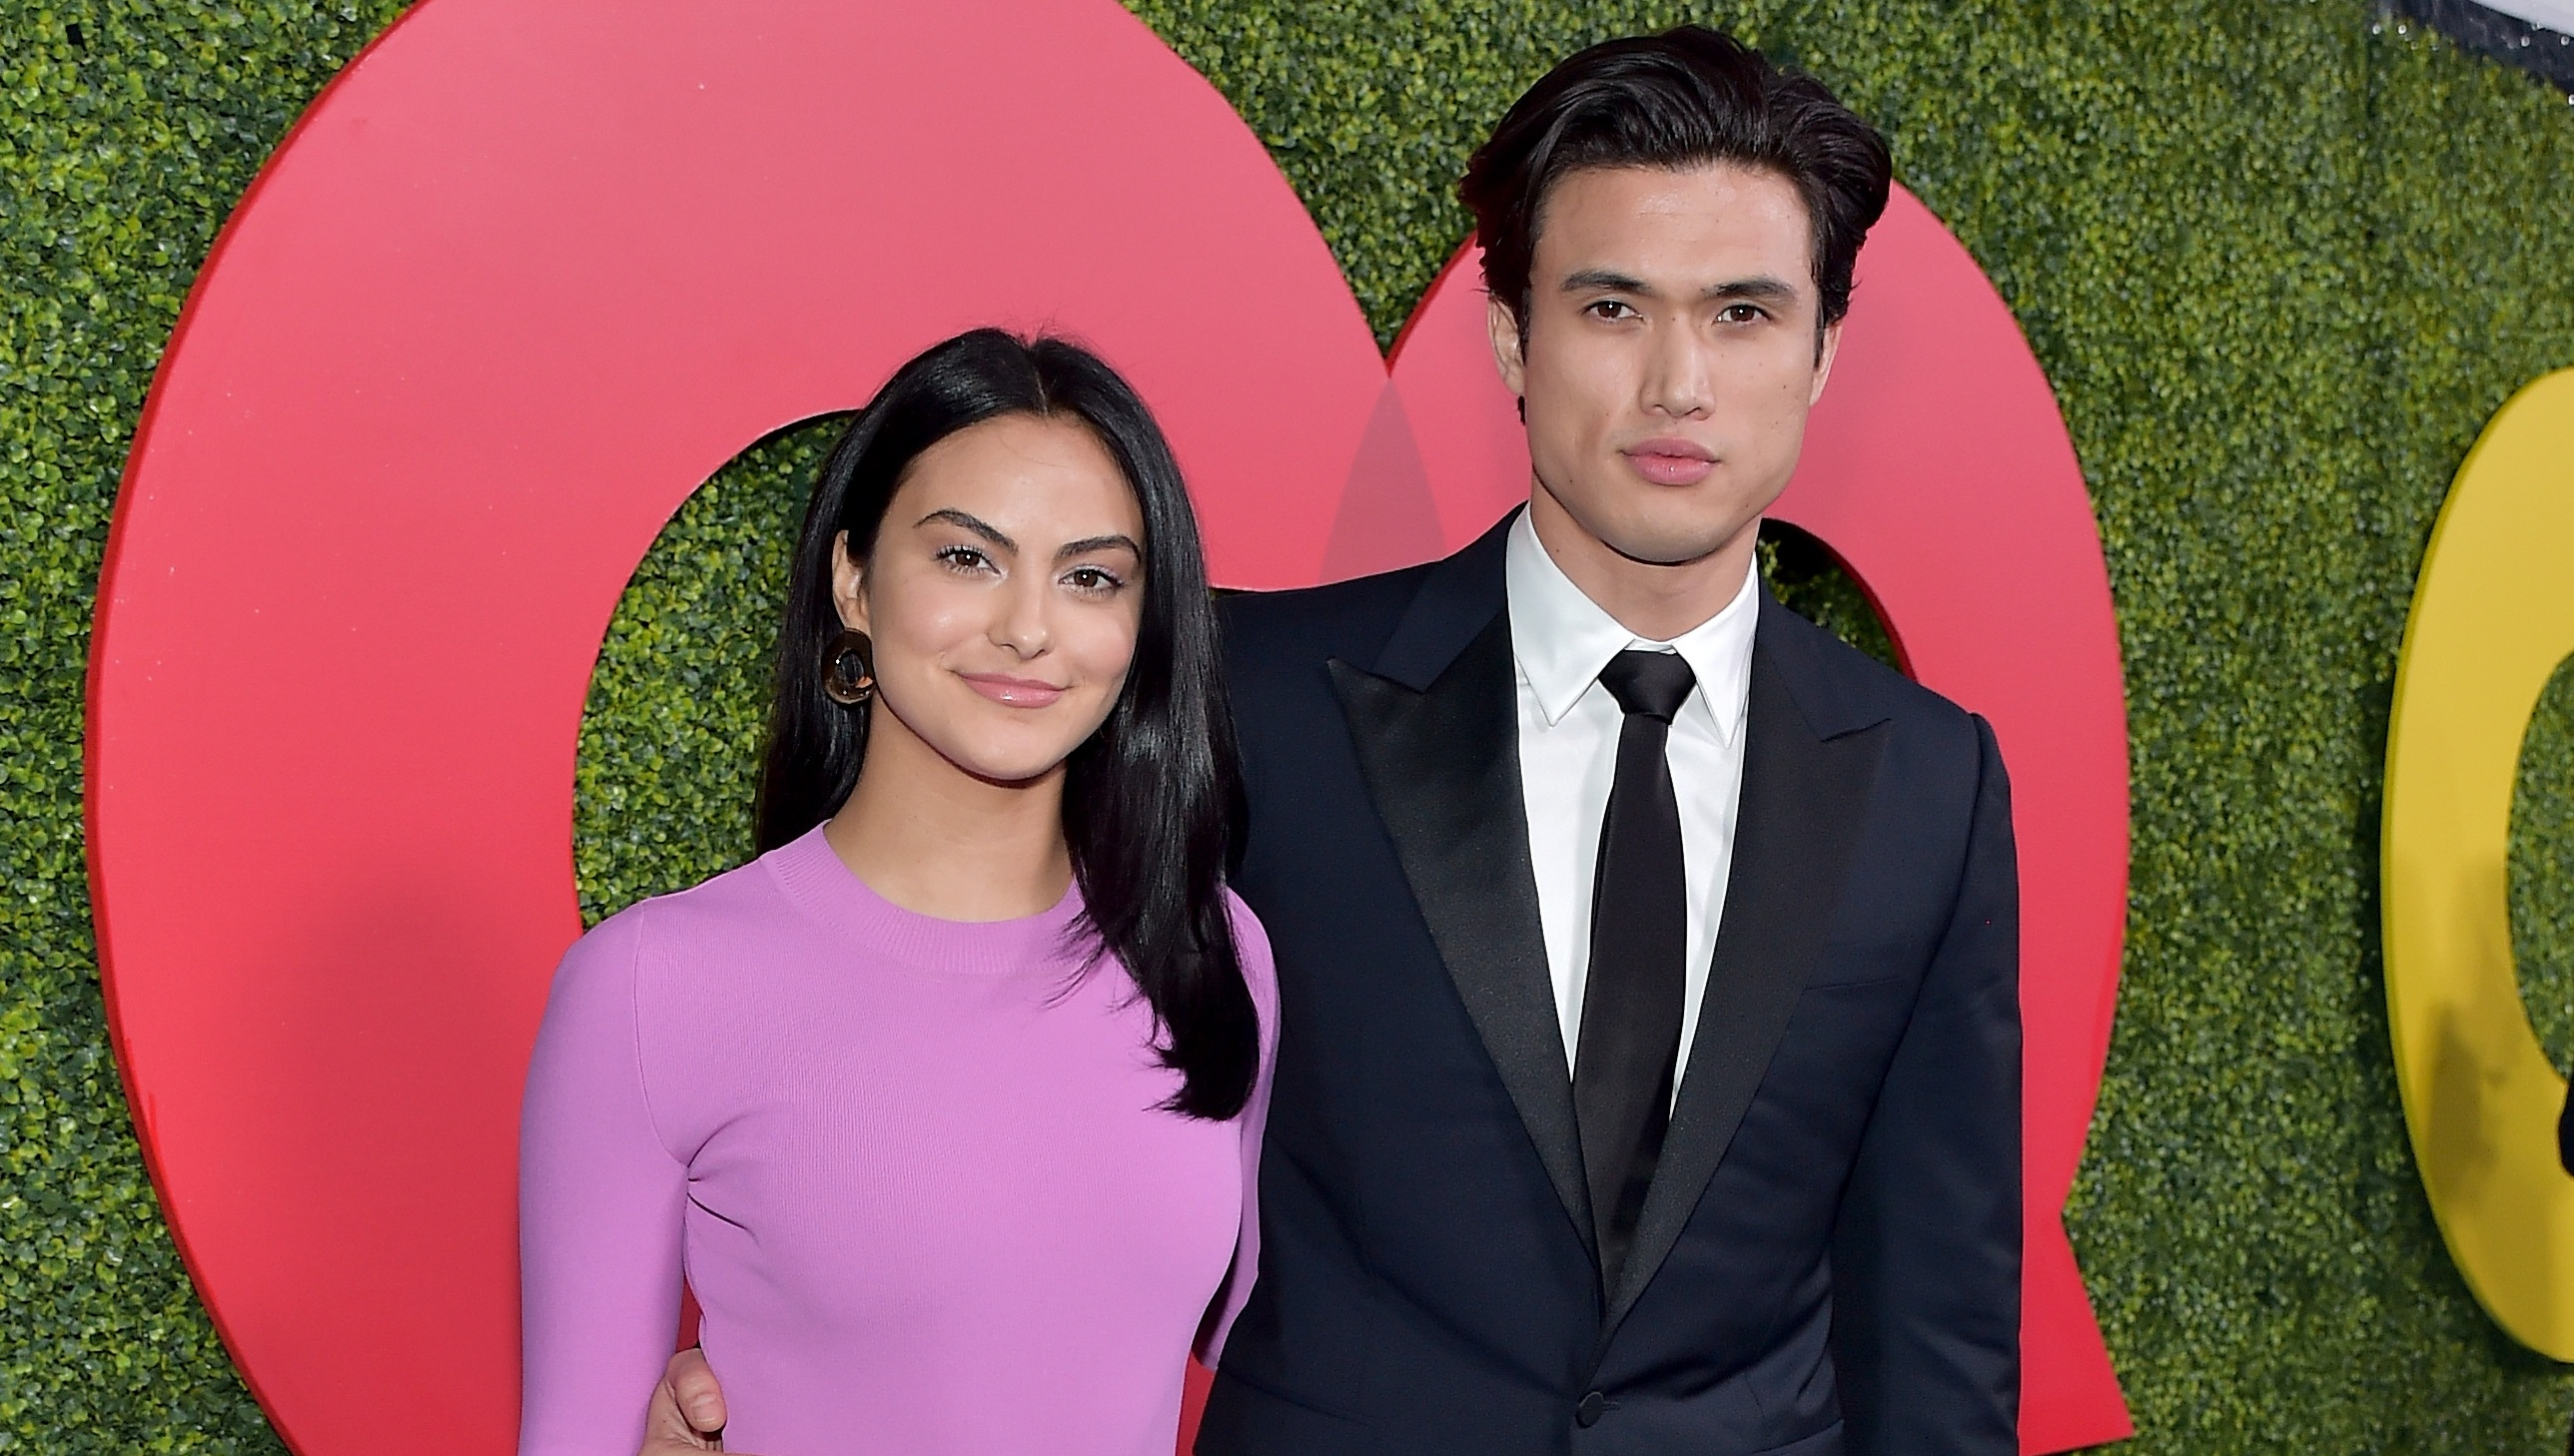 Camila Mendes Opens Up About What She Went Public With Charles Melton